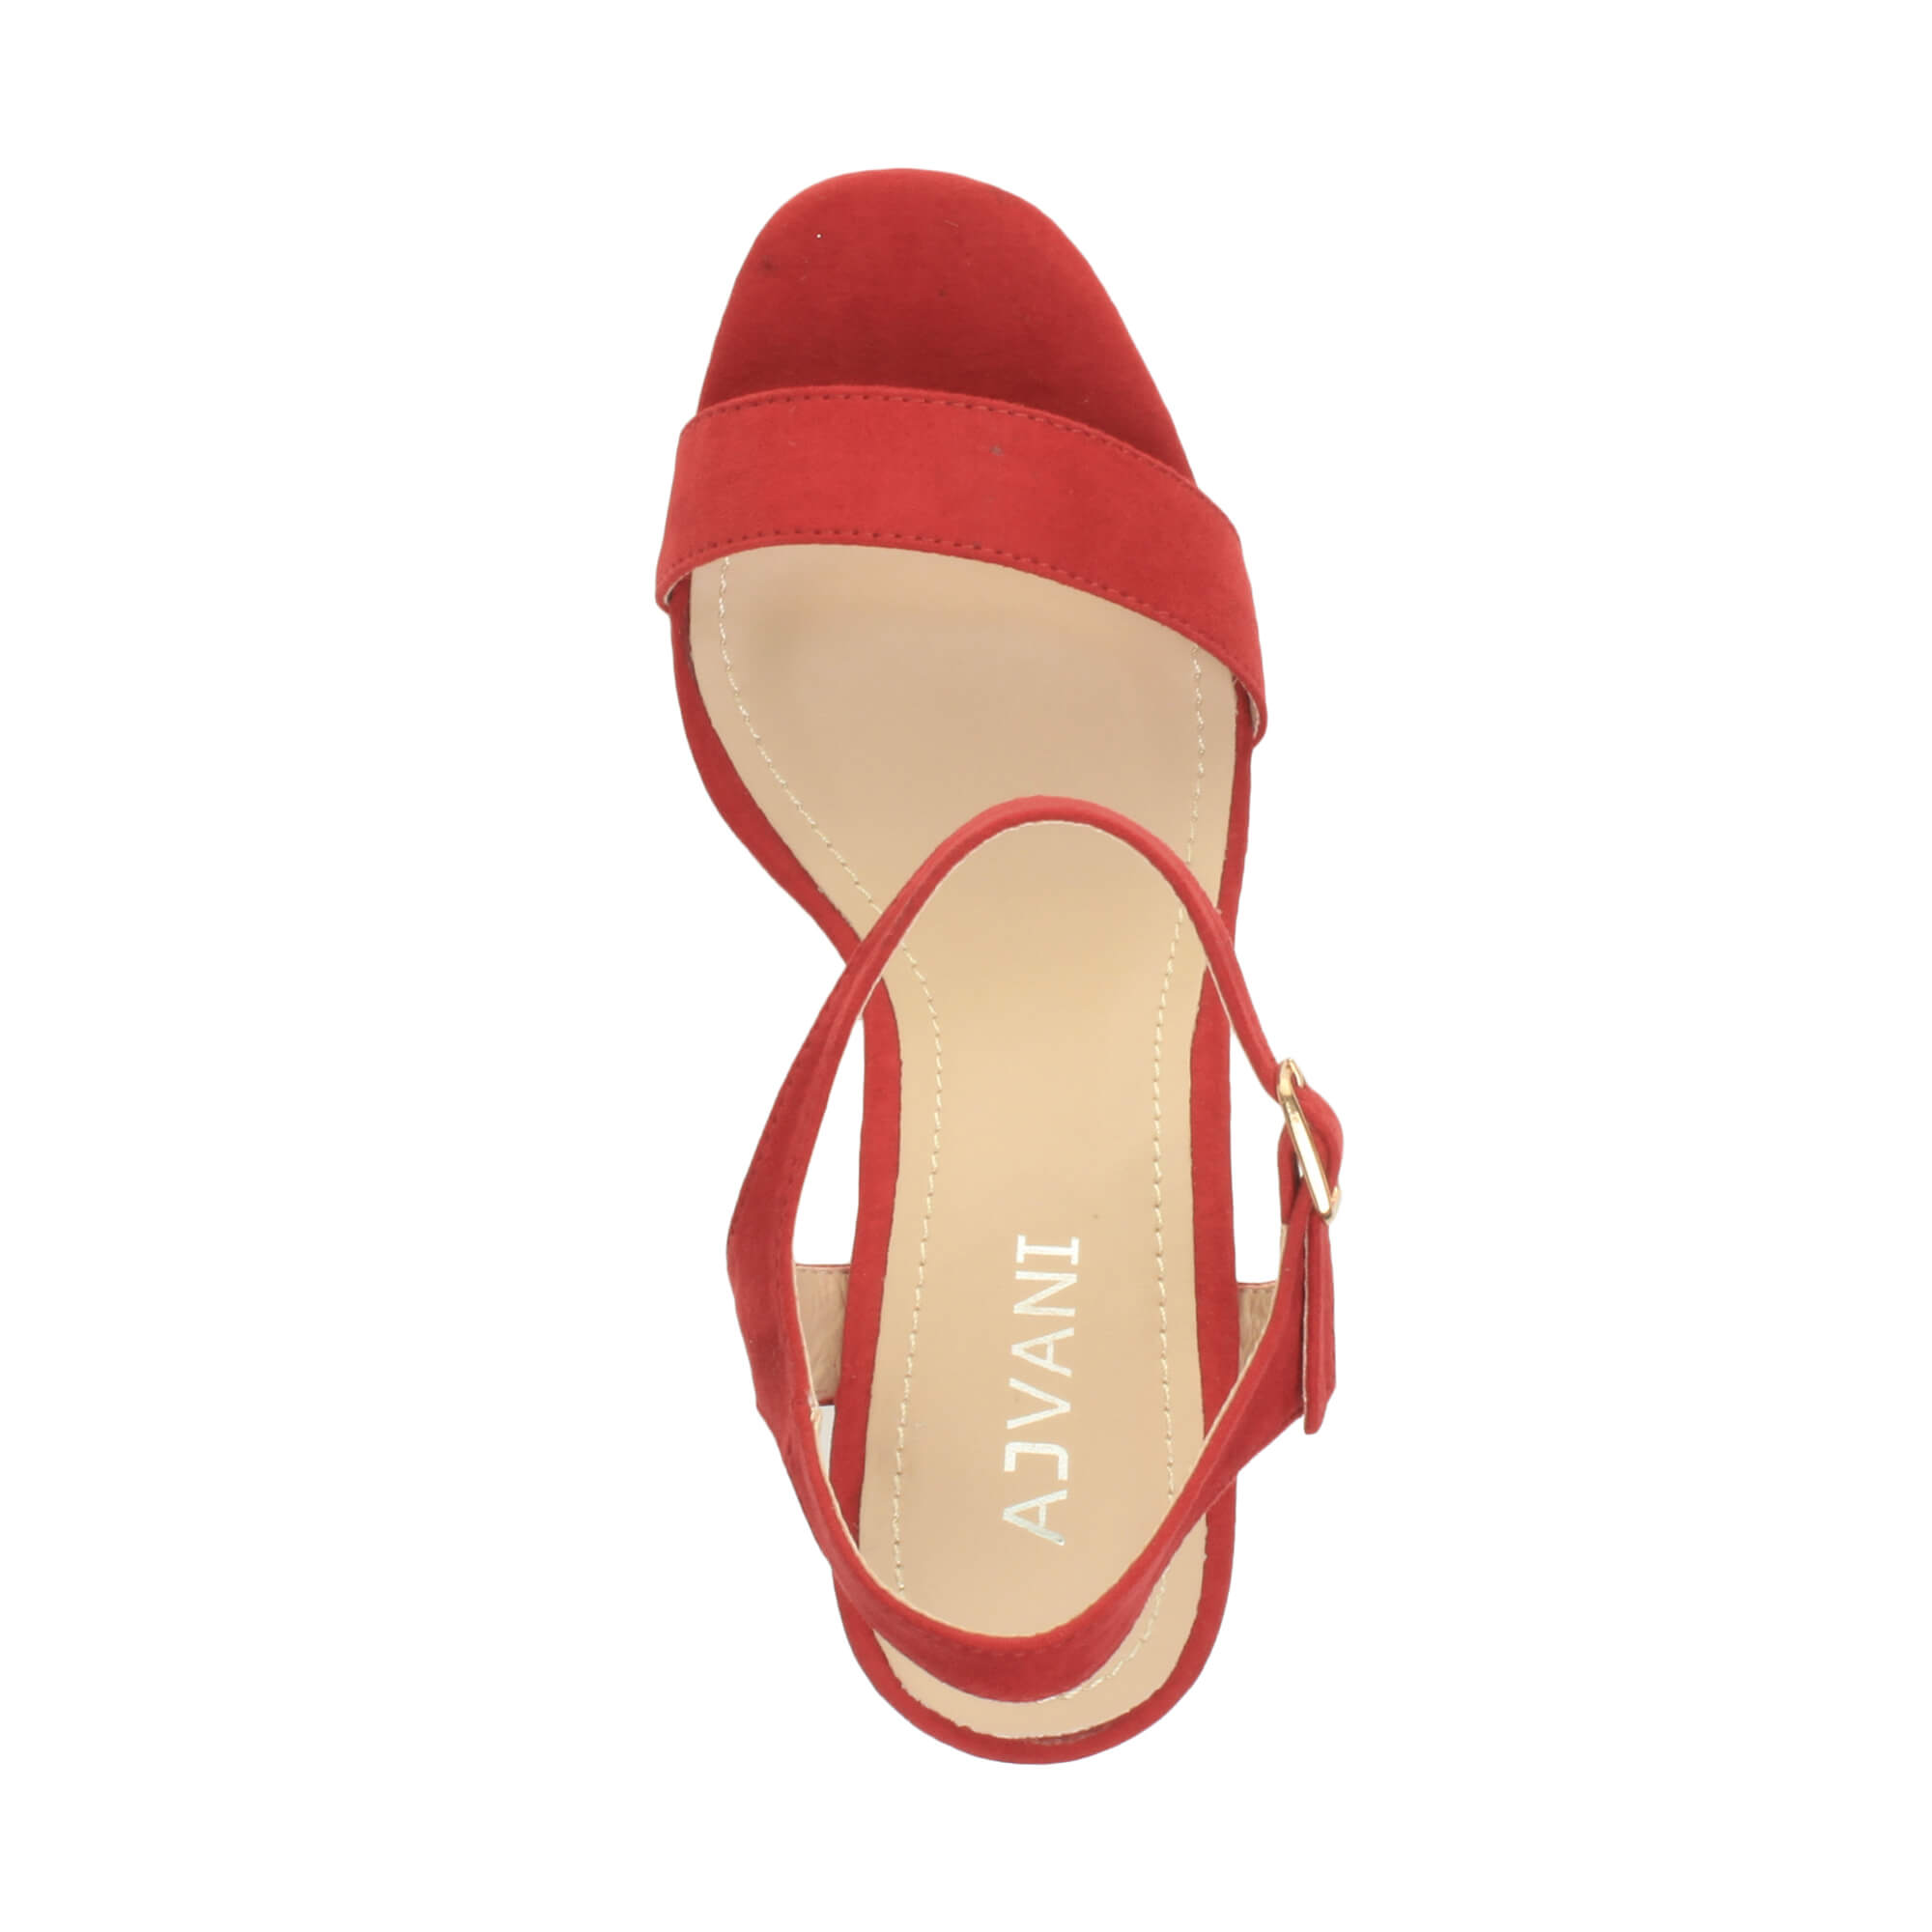 WOMENS-LADIES-HIGH-HEEL-BUCKLE-STRAPPY-BASIC-BARELY-THERE-SANDALS-SHOES-SIZE thumbnail 119